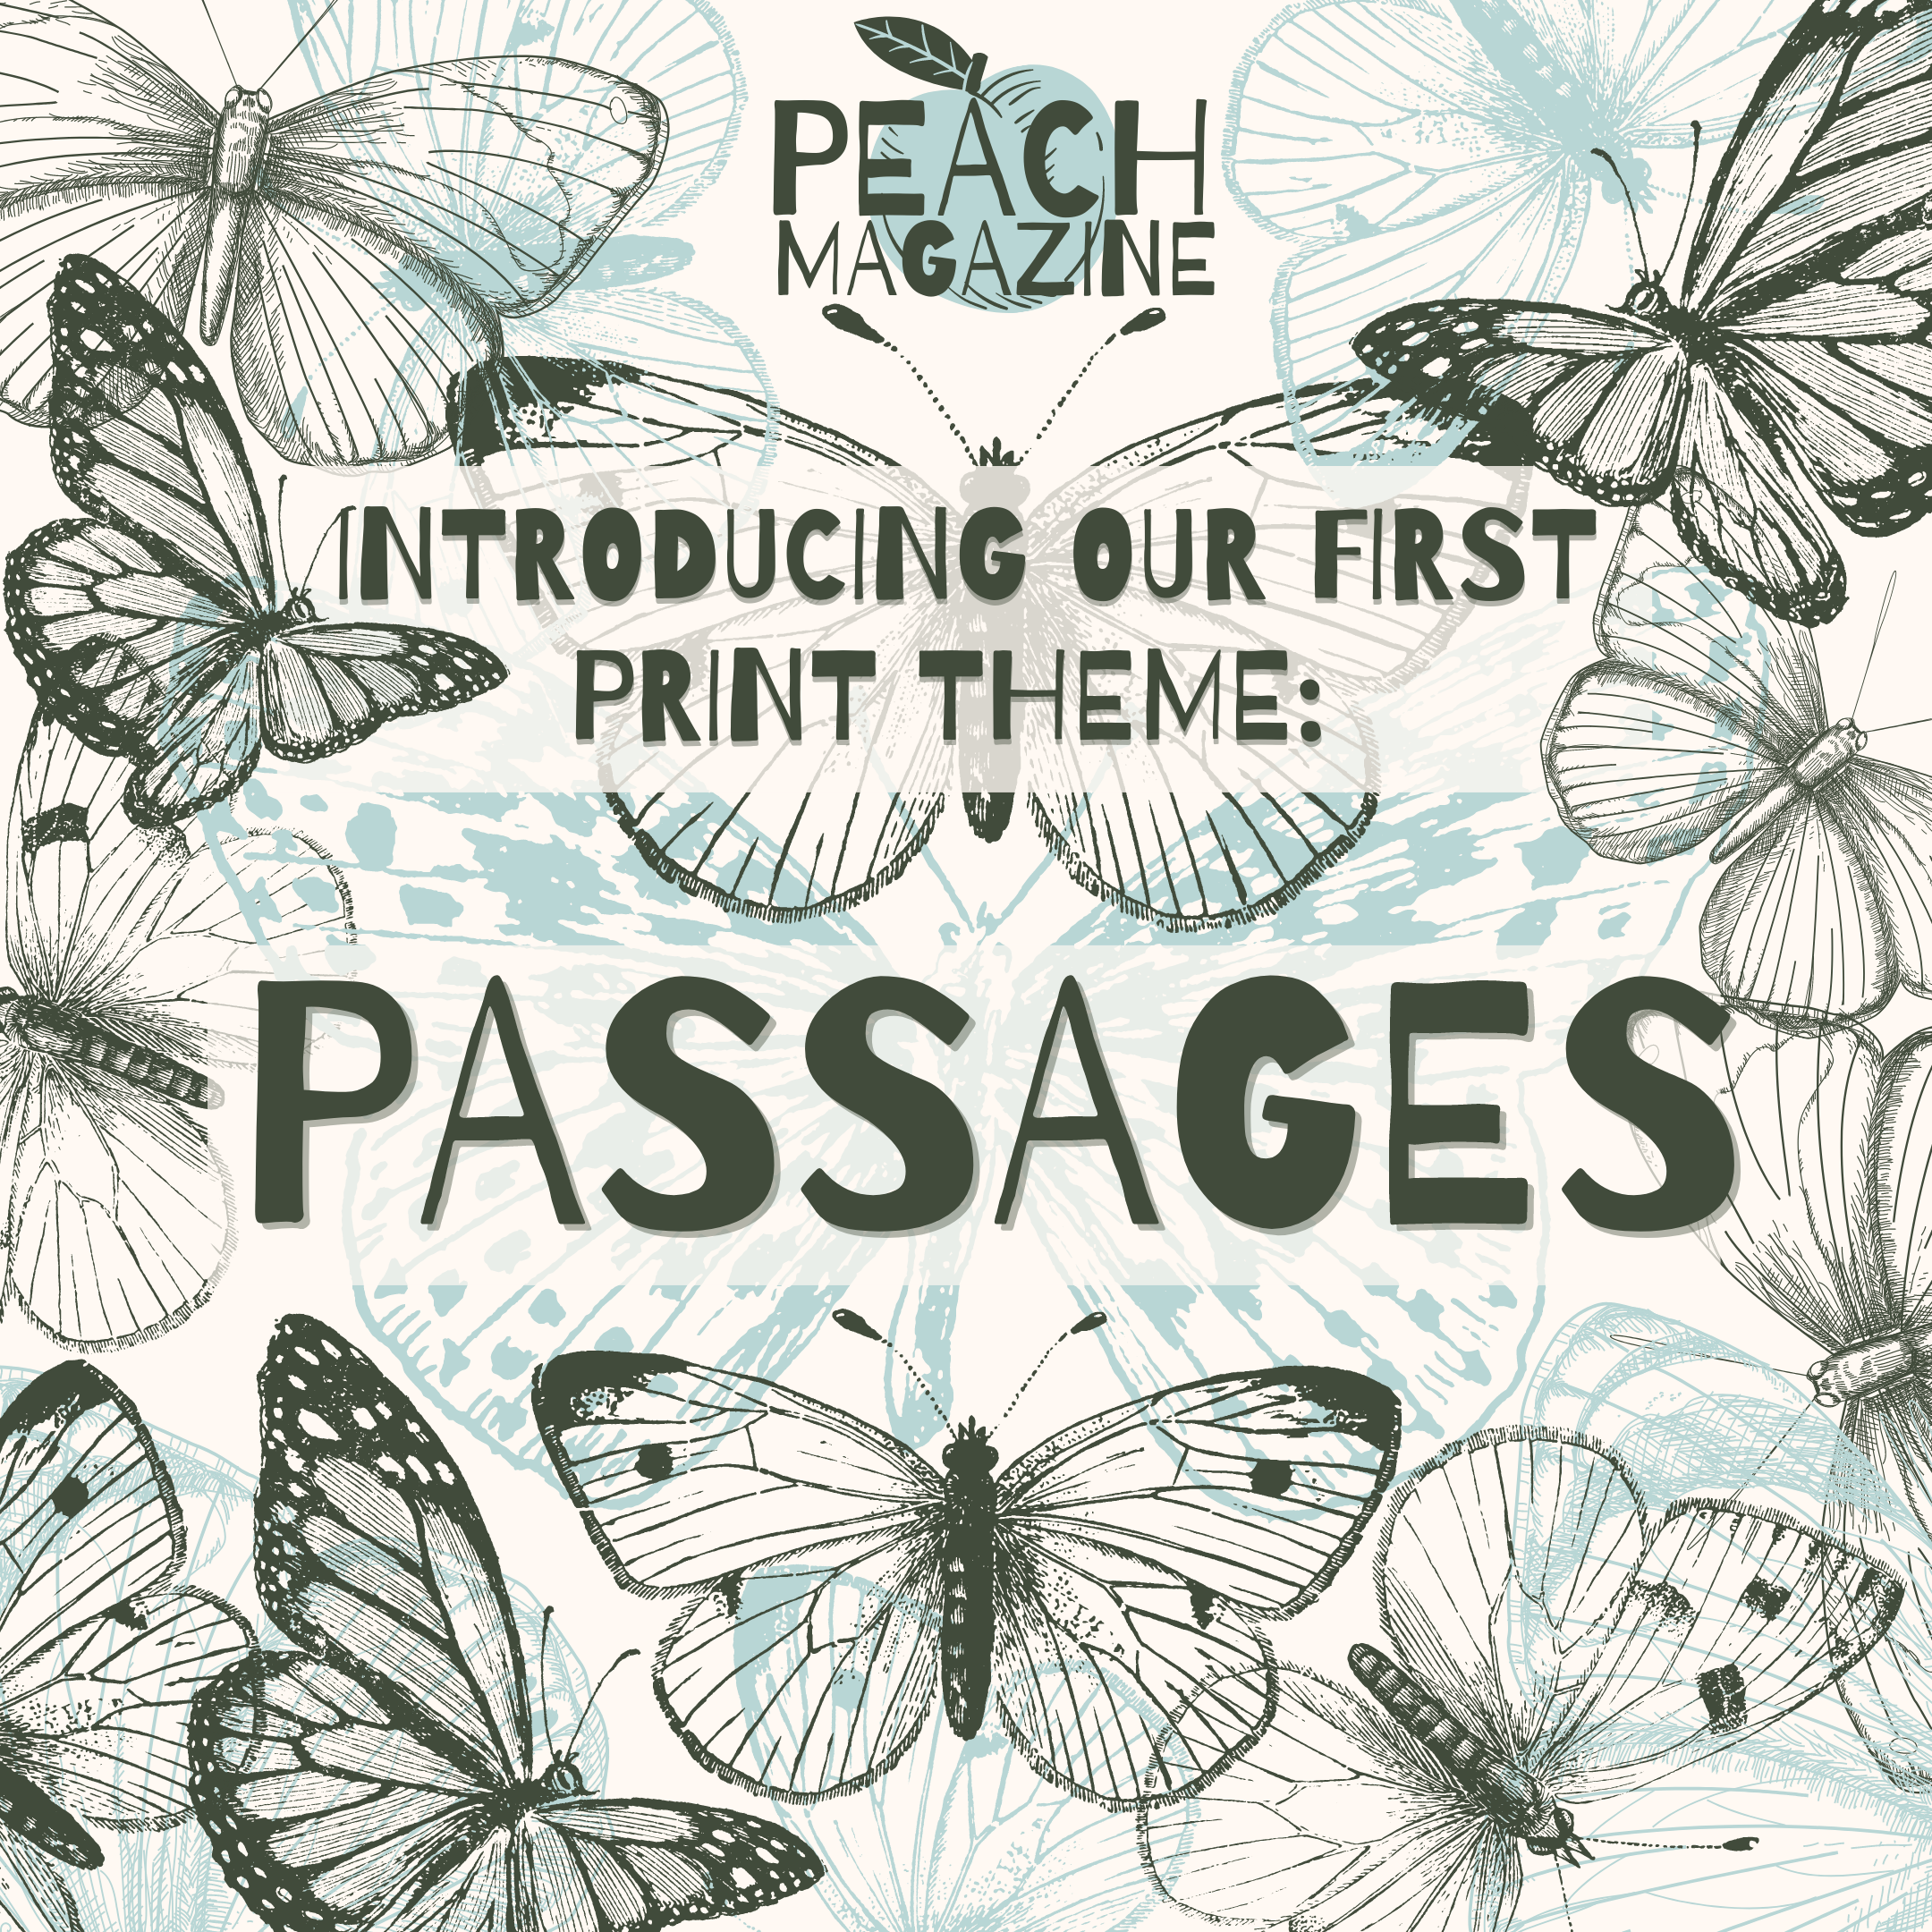 Introducing Our First Print Theme: 'PASSAGES'